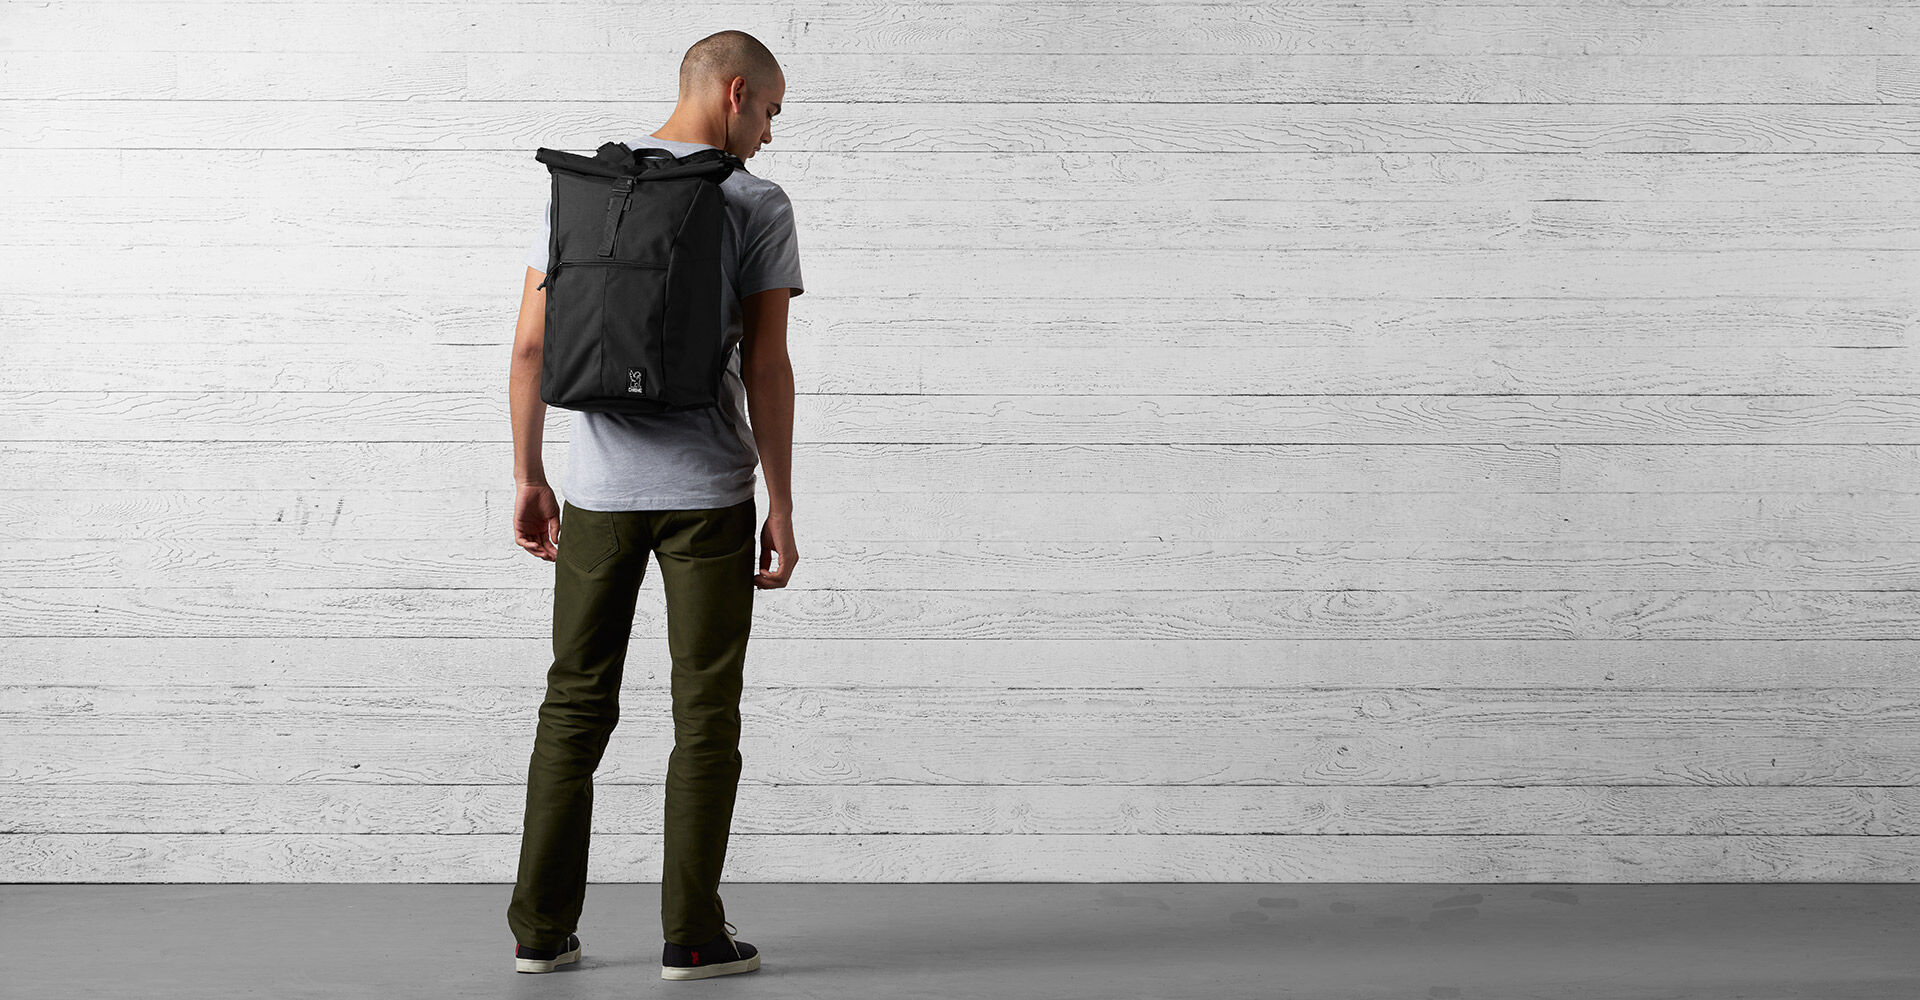 Yalta 2.0 Nylon Backpack in Black - wide view.